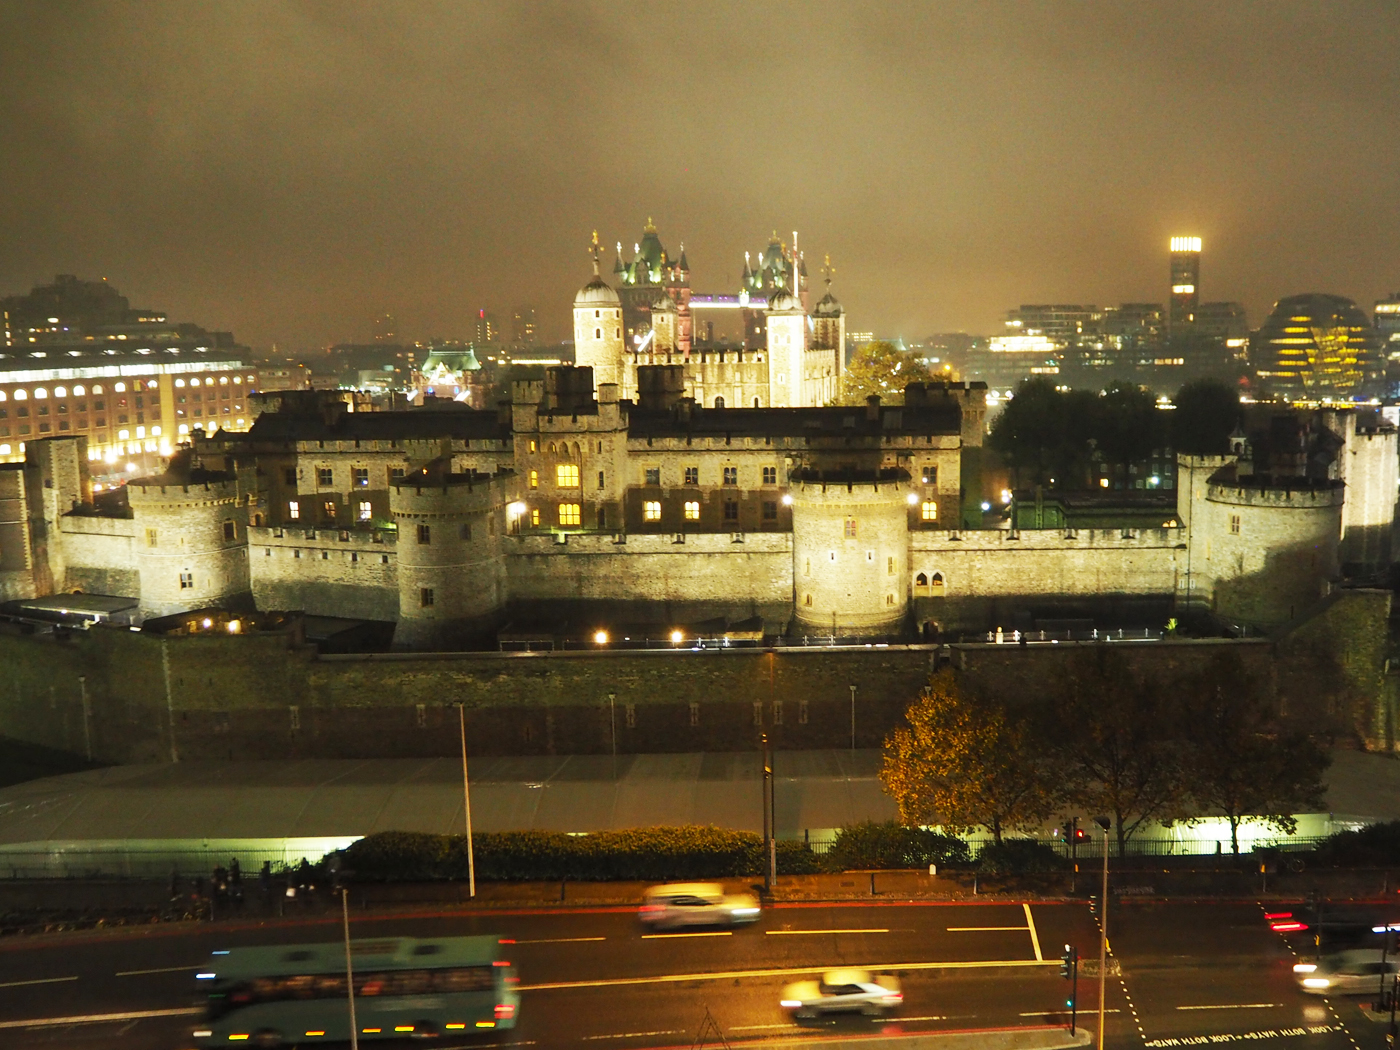 Tower of London, view from citizenM Tower Hill